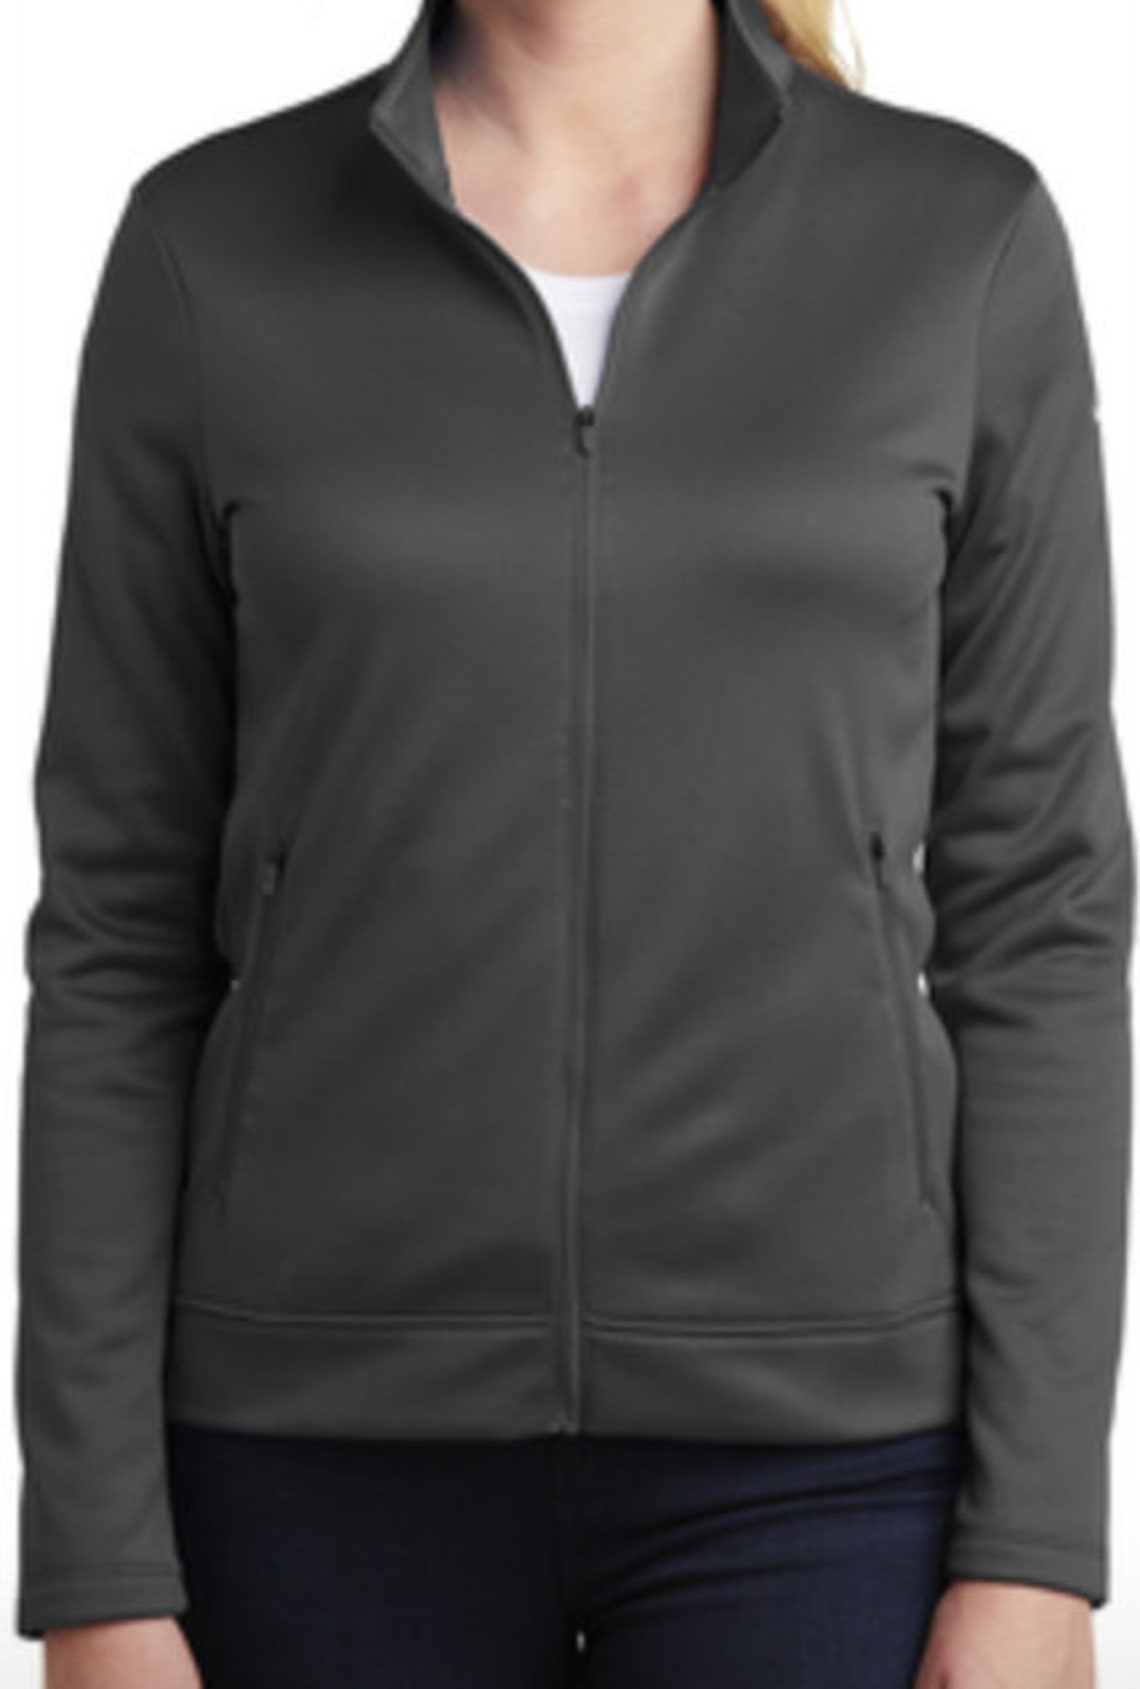 14 Nike Zip Up Thermal Women And Mens Custom With 4 Embroidery Locations